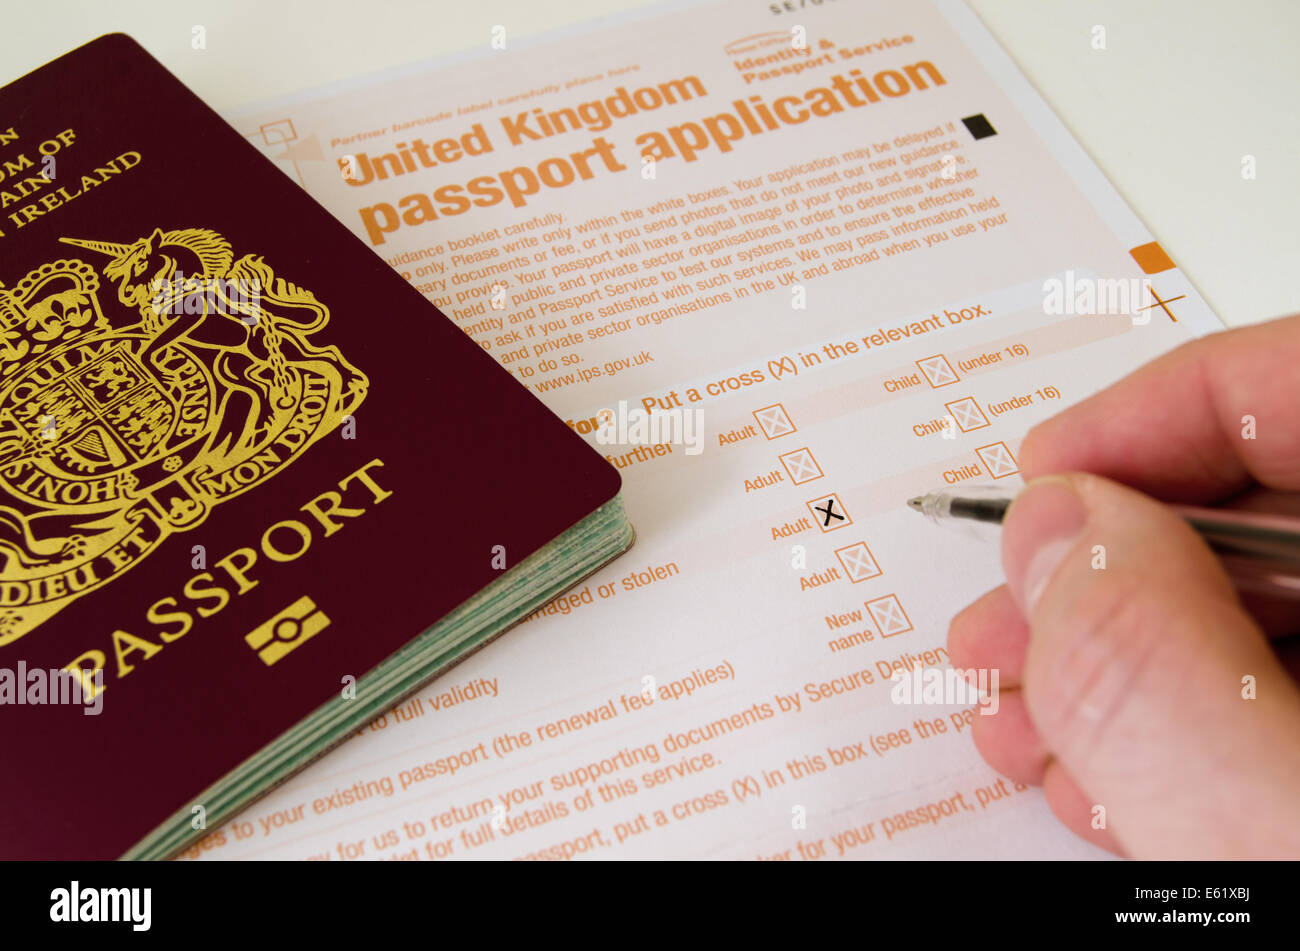 British Passport Application Form To Print, Completing A United Kingdom Passport Application Form, British Passport Application Form To Print